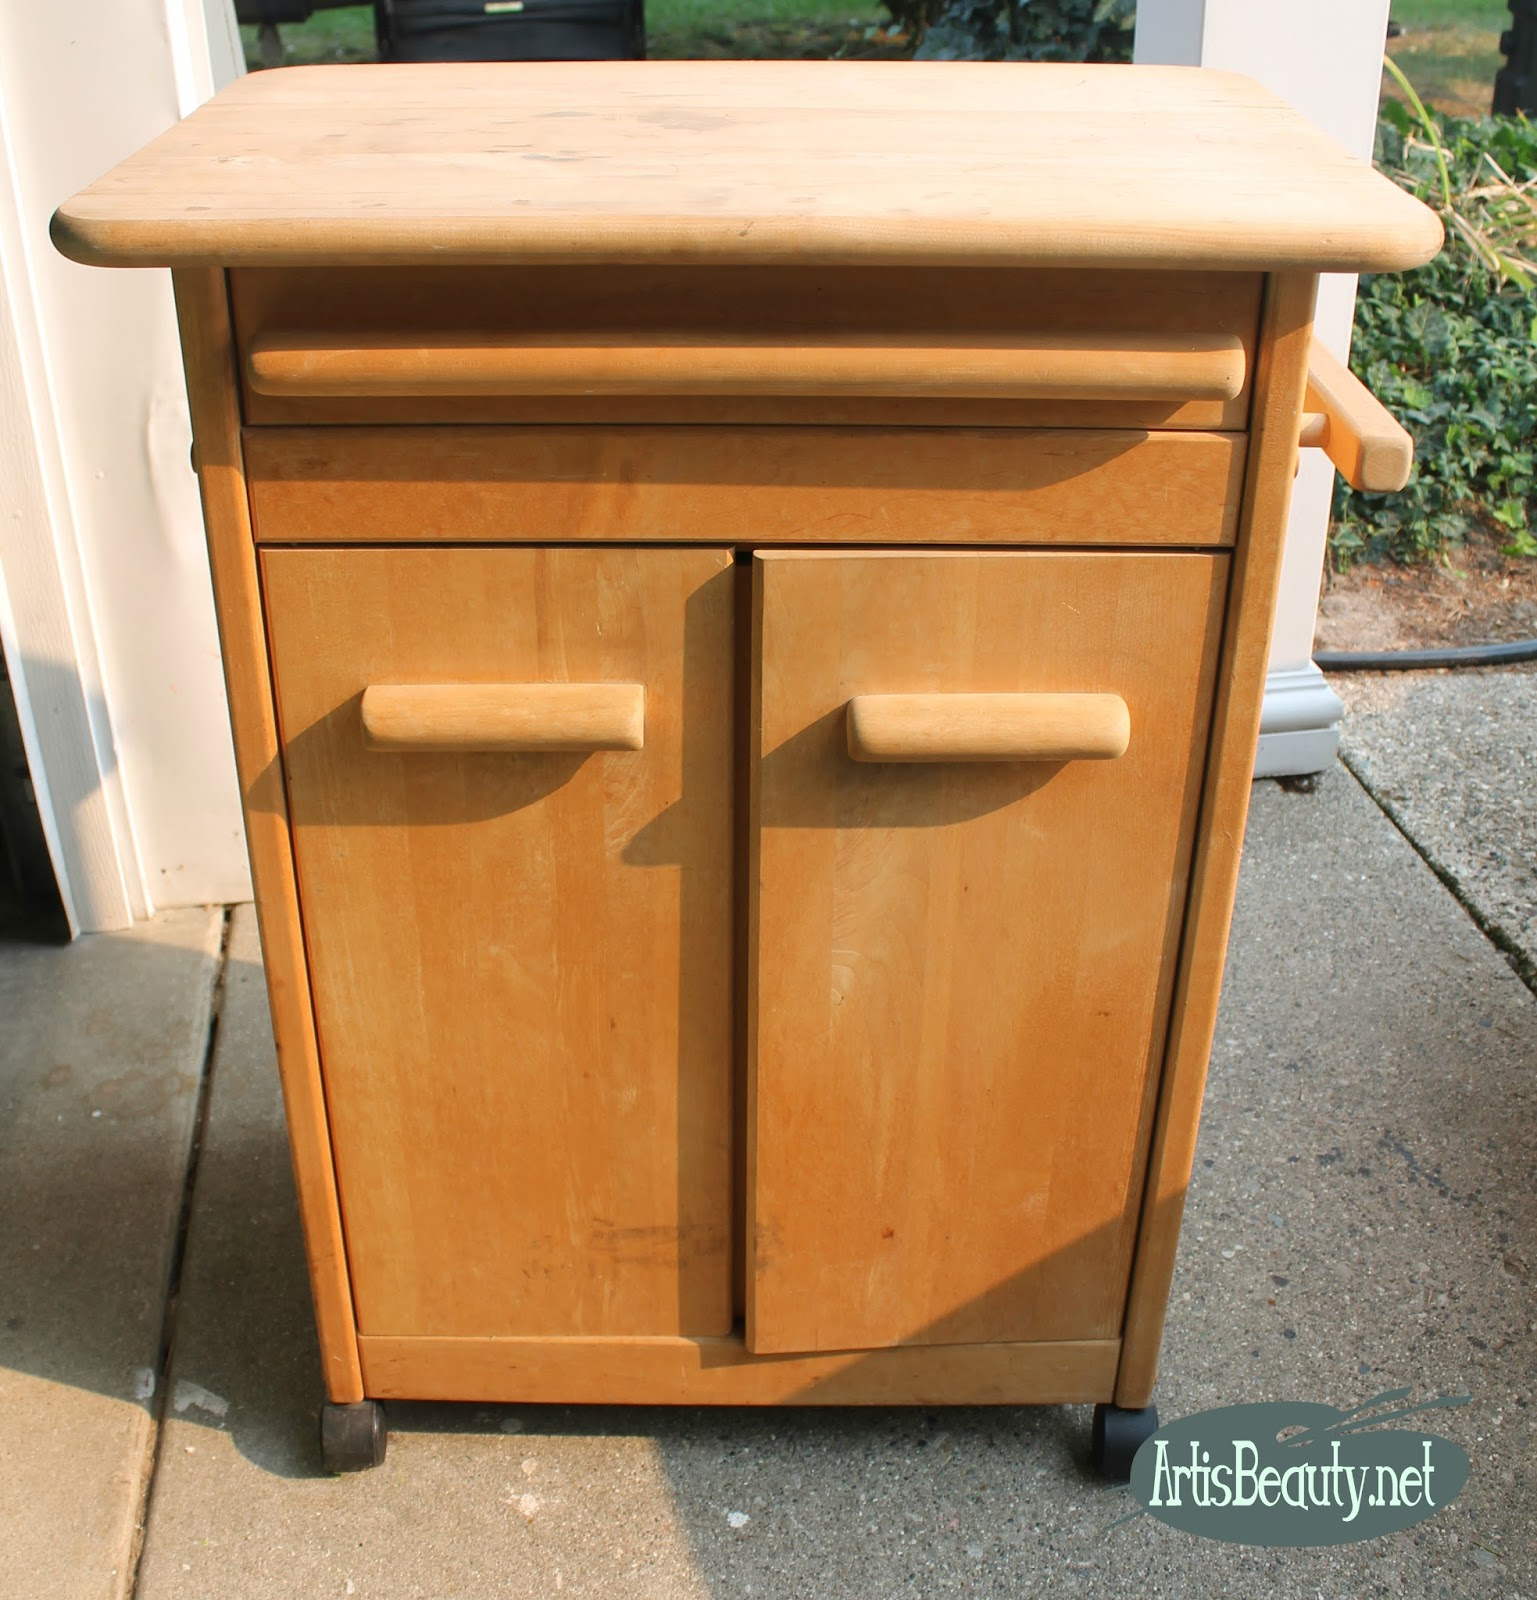 Awesome rolling kitchen cart farmhouse style makeover before and after using vintage effects paint deco art and